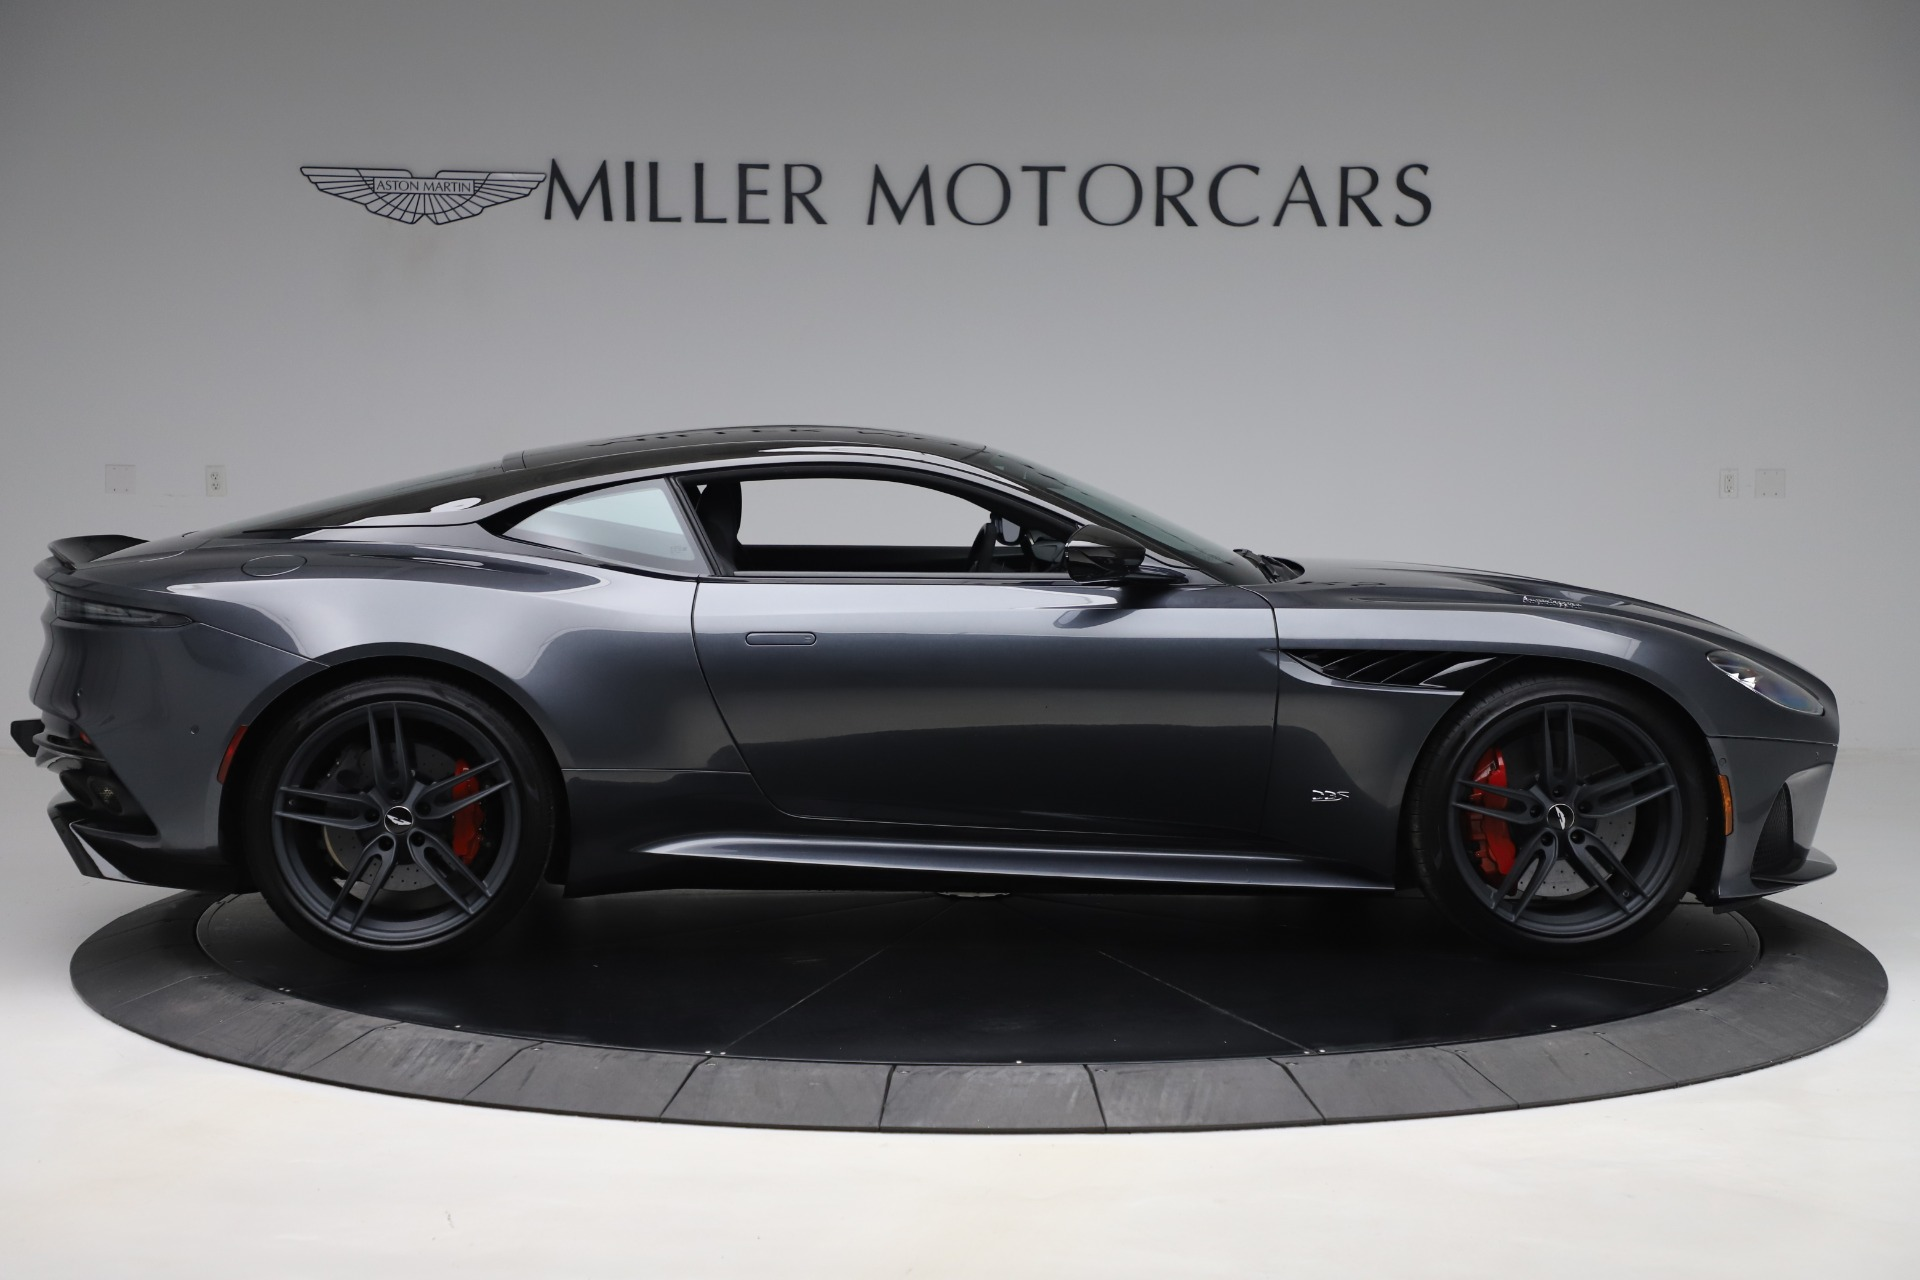 Used 2019 Aston Martin DBS Superleggera For Sale In Greenwich, CT 3570_p9